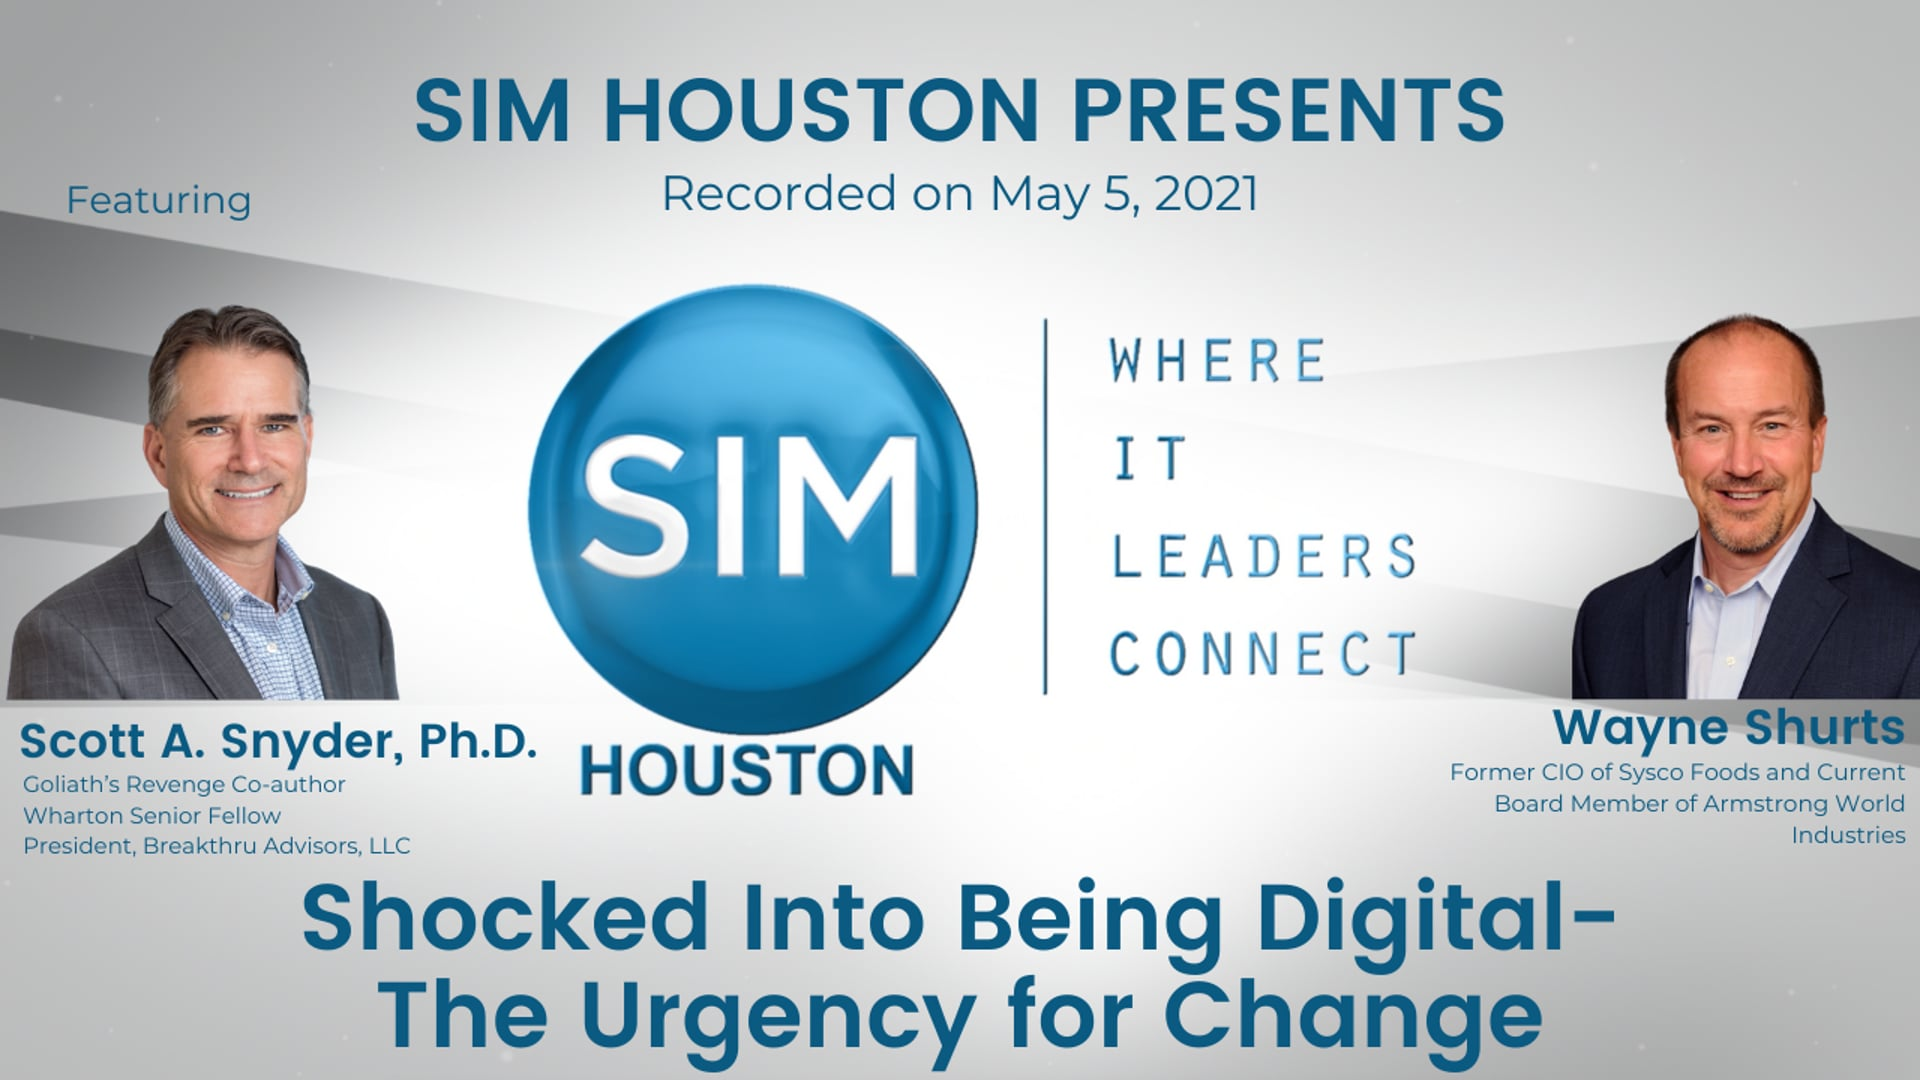 SIM Houston Presents: Shocked Into Being Digital - The Urgency for Change